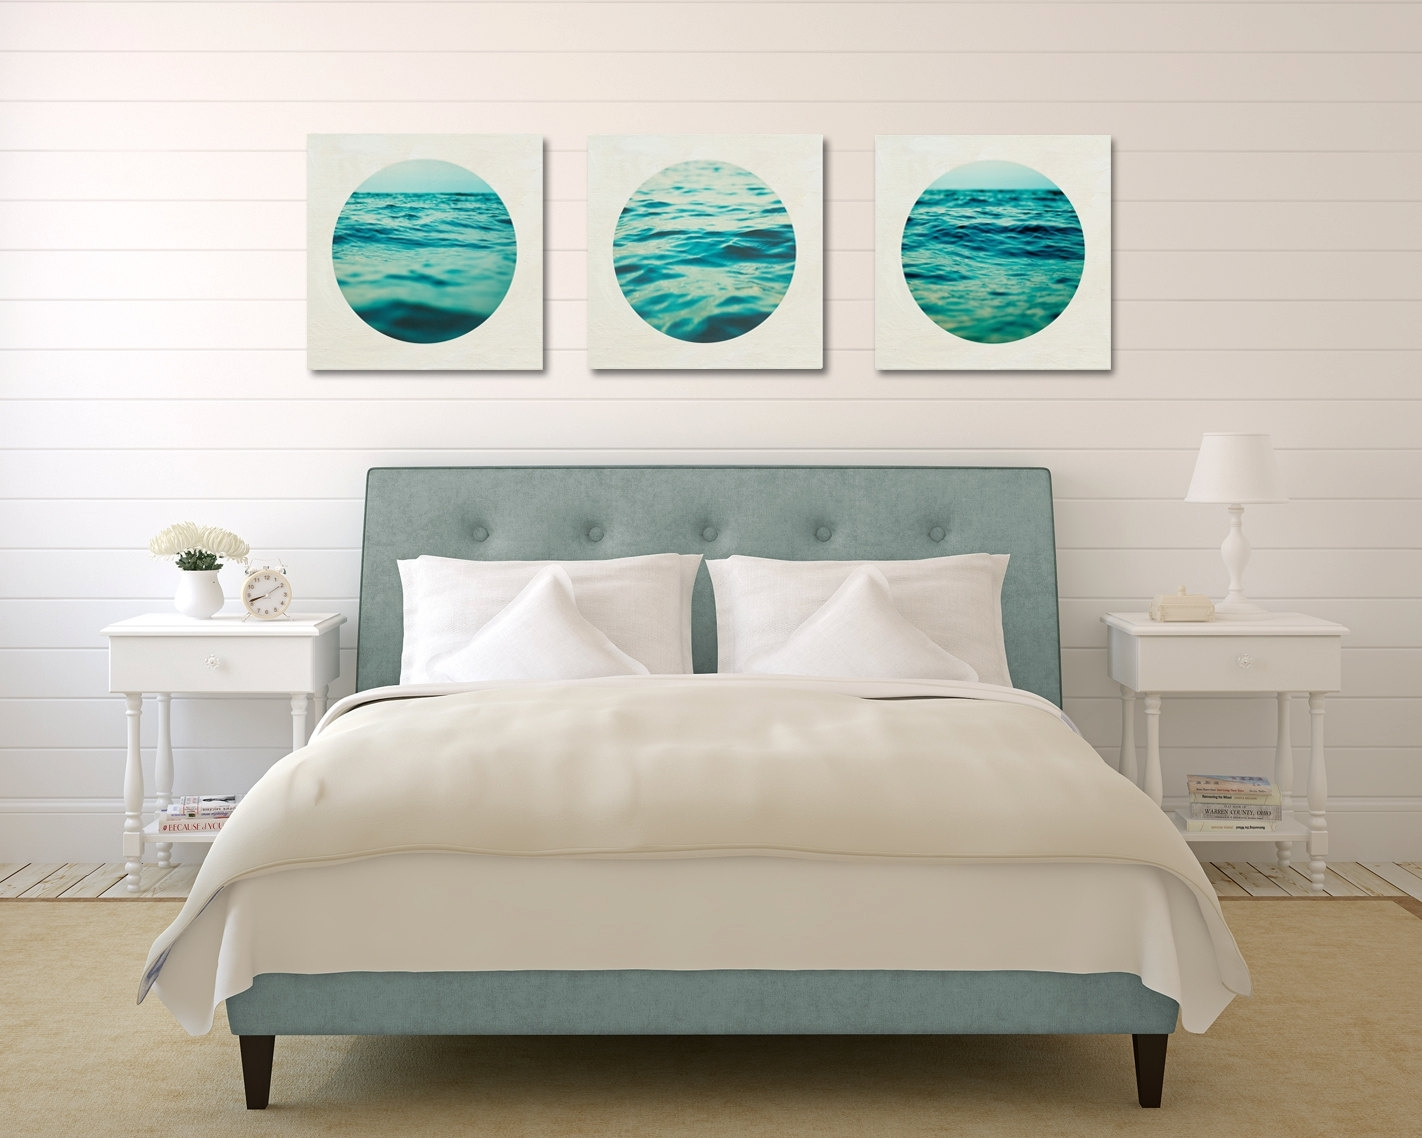 Stunning Bedroom Canvas Art Images – House Design Interior Intended For Most Recent Bedroom Canvas Wall Art (View 3 of 15)